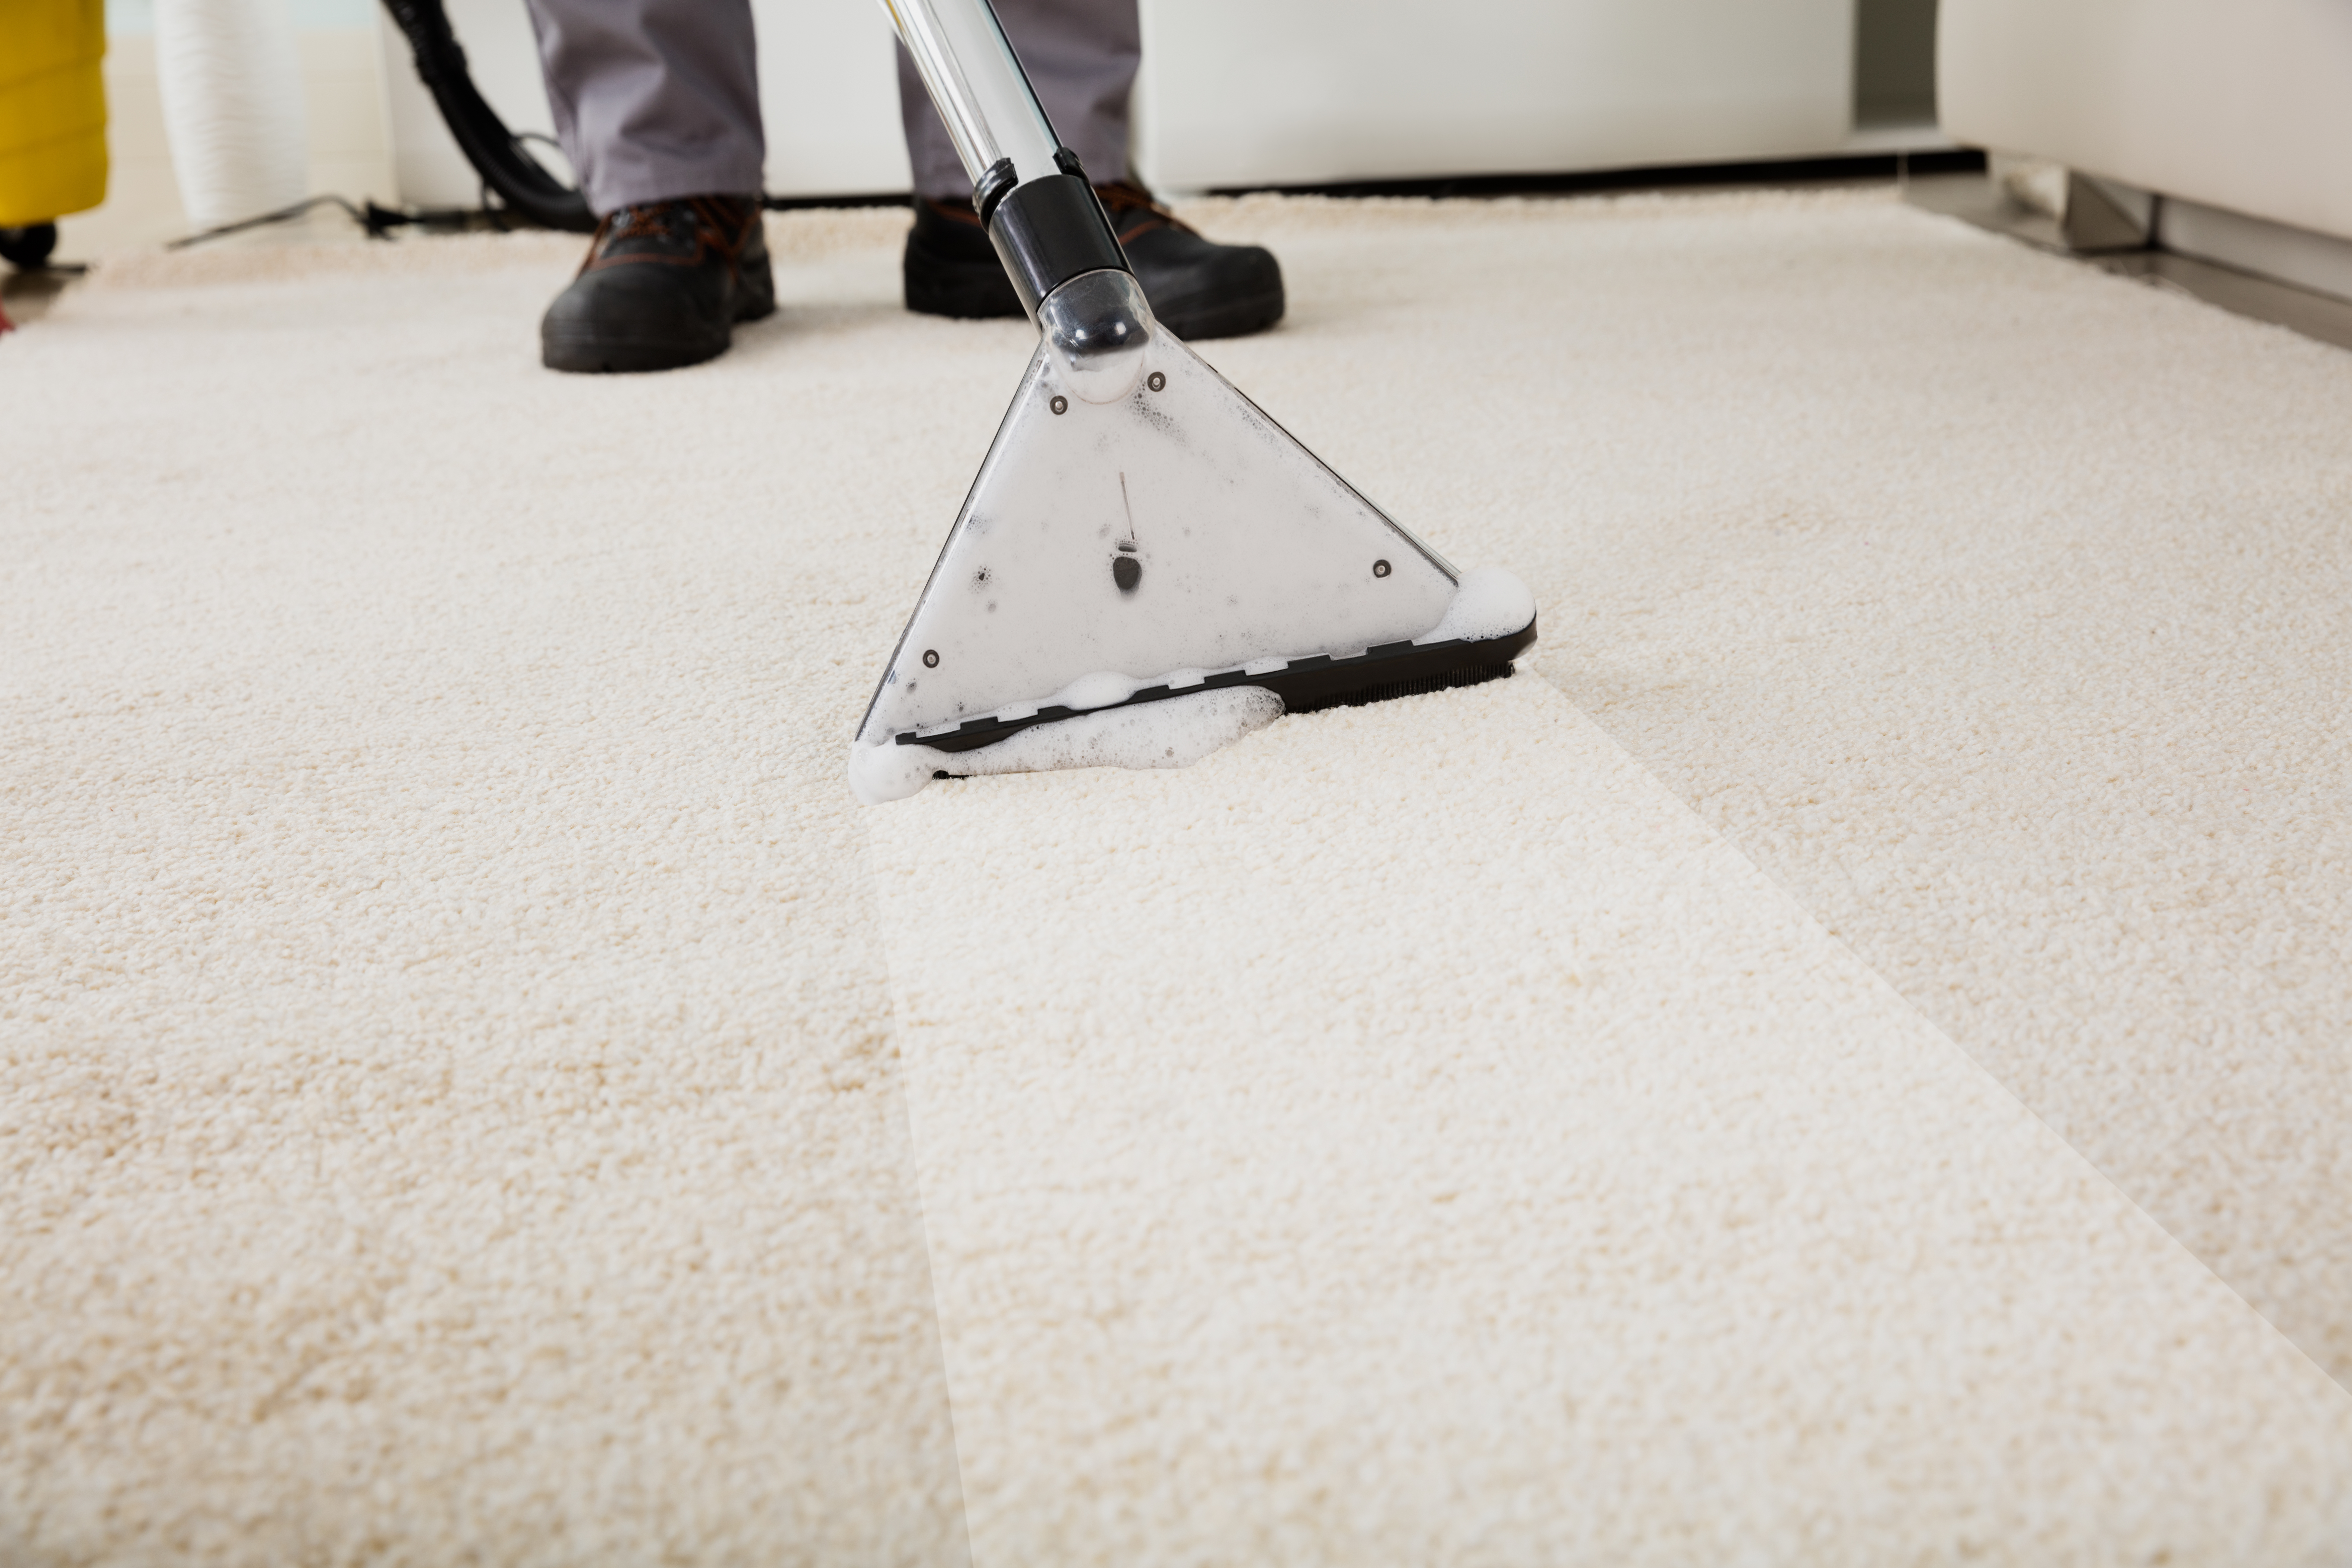 How to Get Dry Paint Out of Carpet | Home Guides | SF Gate